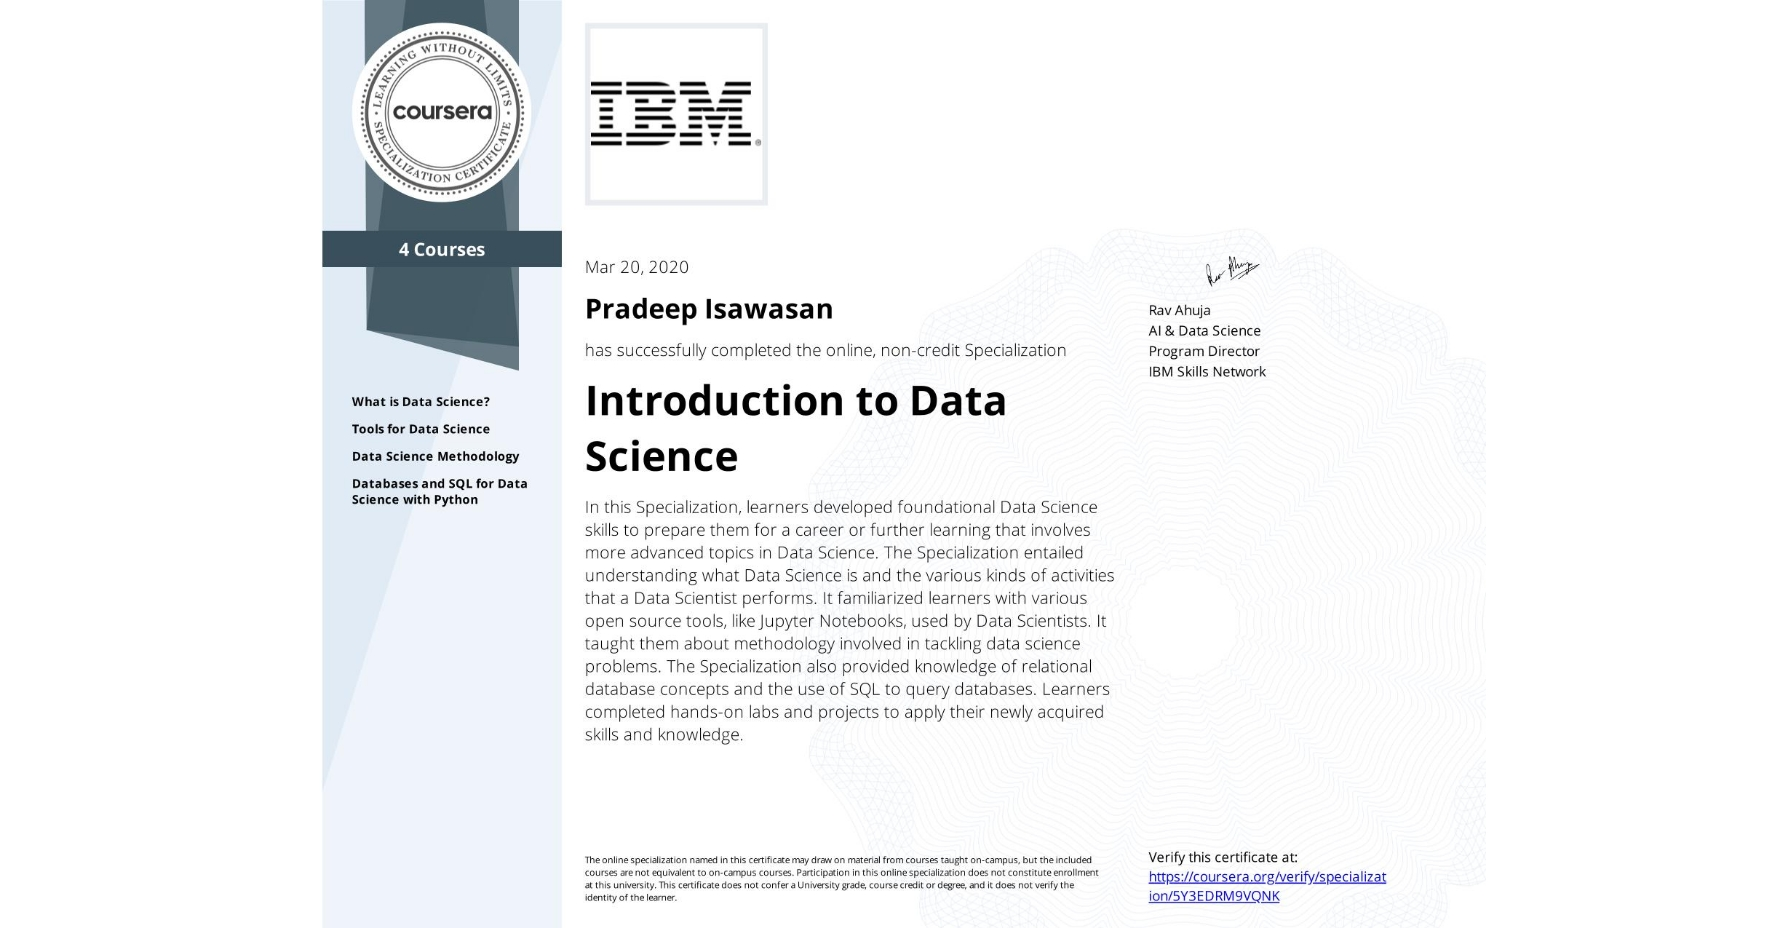 View certificate for Pradeep Isawasan, Introduction to Data Science, offered through Coursera. In this Specialization learners developed foundational Data Science skills to prepare them for a career or further learning that involves more advanced topics in Data Science. The specialization entailed understanding what is Data Science is and the various kinds of activities that a Data Scientist's perform. It familiarized learners with various open source tools, like Jupyter notebooks, used by Data Scientists. It taught them about methodology involved in tackling data science problems. The specialization also provided knowledge of relational database concepts and the use of SQL to query databases. Learners completed hands-on labs and projects to apply their newly acquired skills and knowledge.